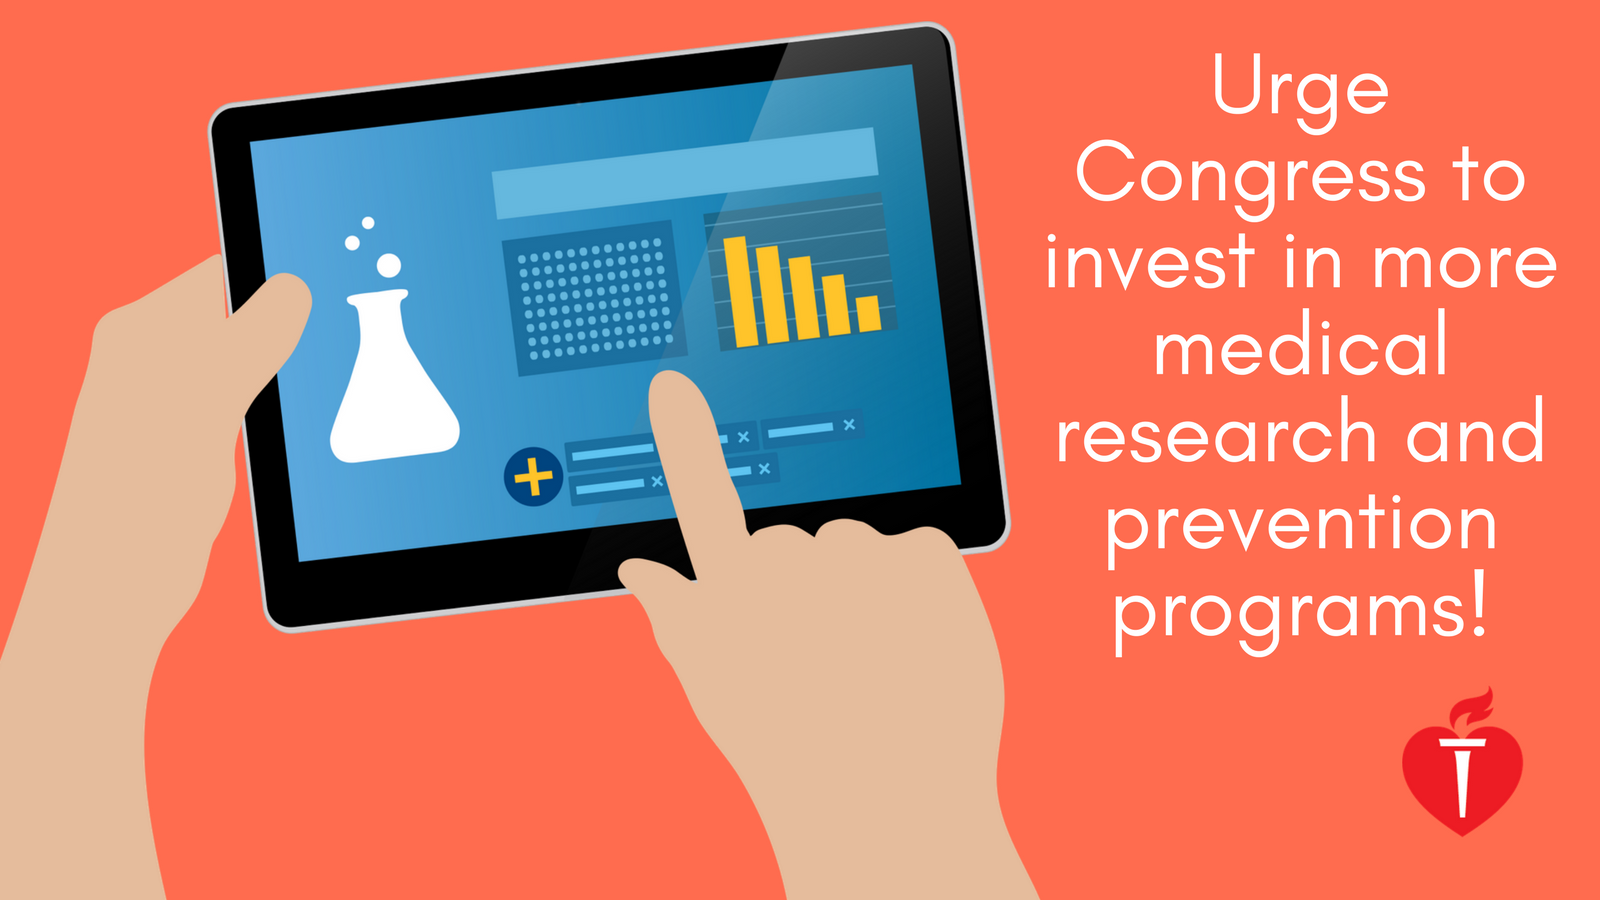 Urge Congress to invest in more medical research and prevention programs